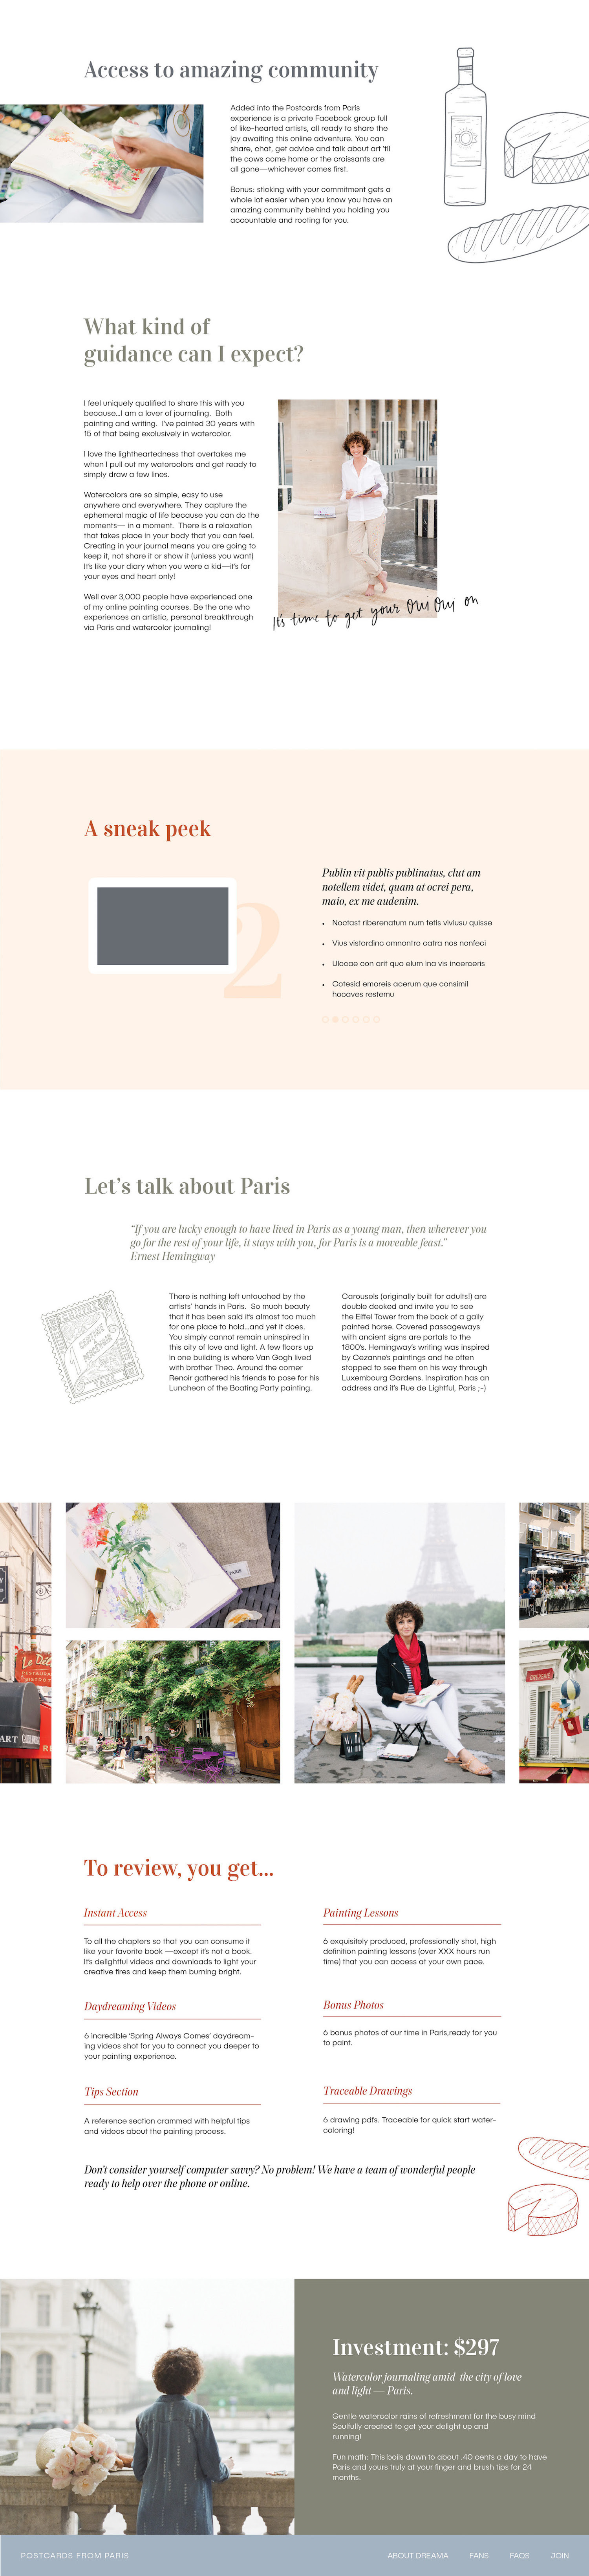 Postcards from Paris Online Course Painting Design Watercolors UX/UI Learning System Training Dreama Tolle Perry Identity Division Lis Lisande Dingjan Brisbane Netherlands UK London Experience Design Studio Custom Hand Lettering French Type